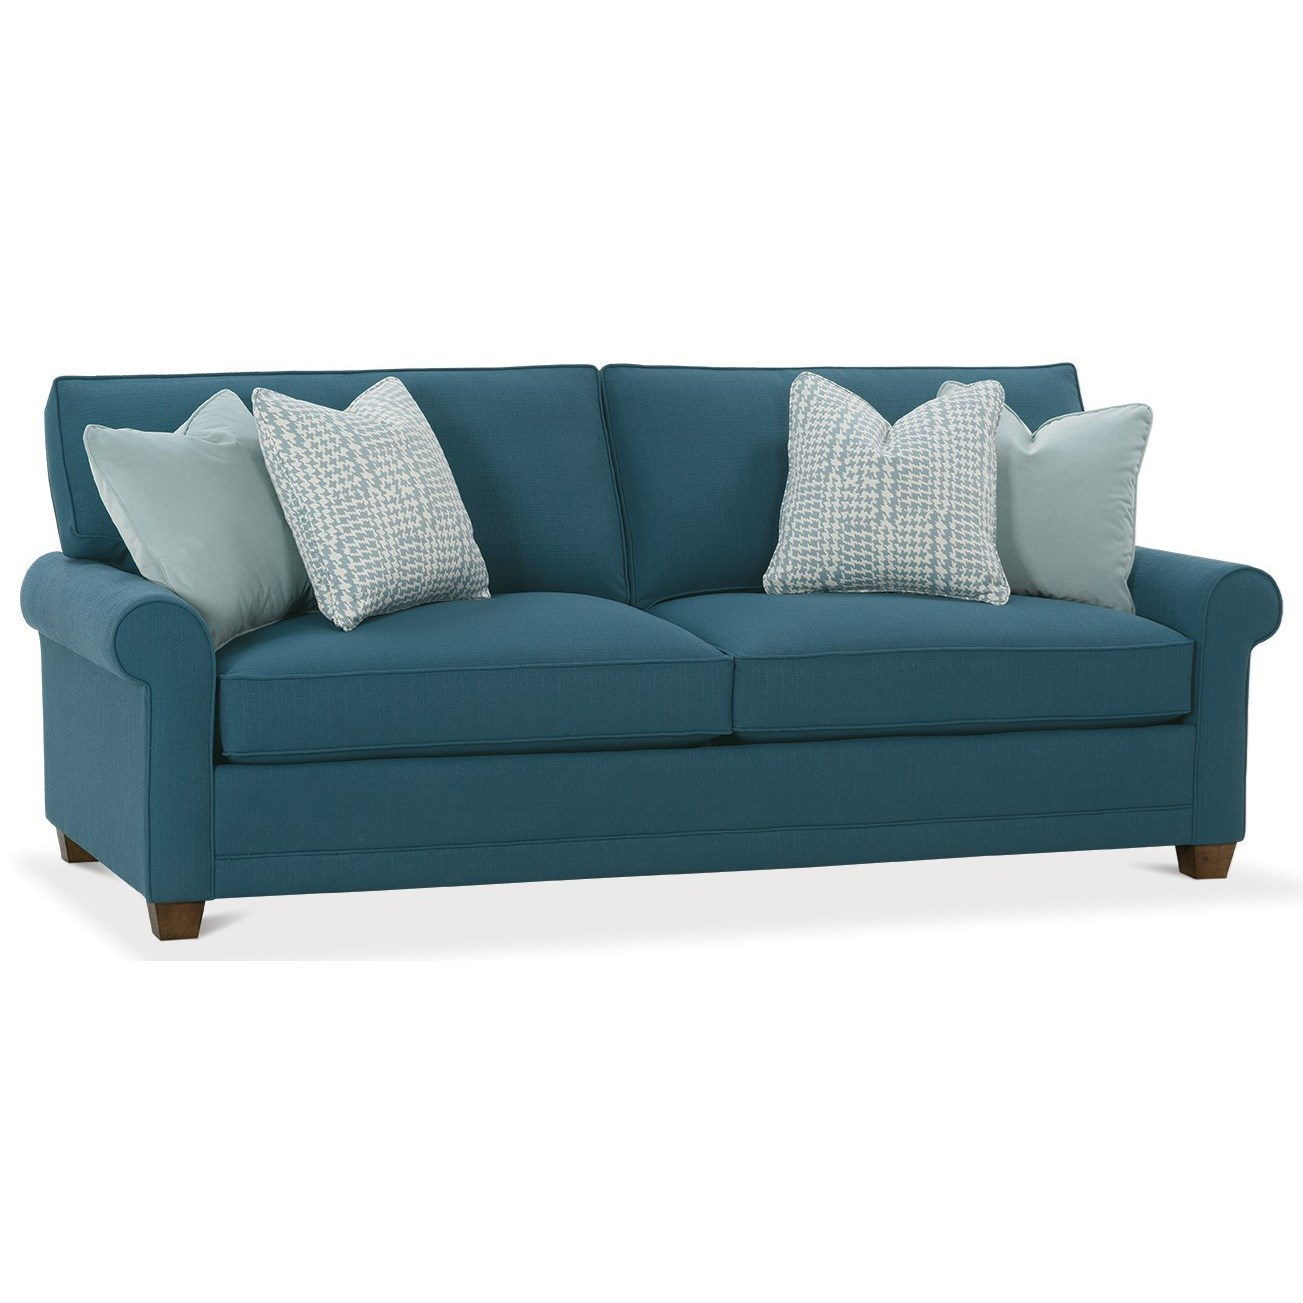 My Style I Customizable Sofa by Rowe at Steger's Furniture